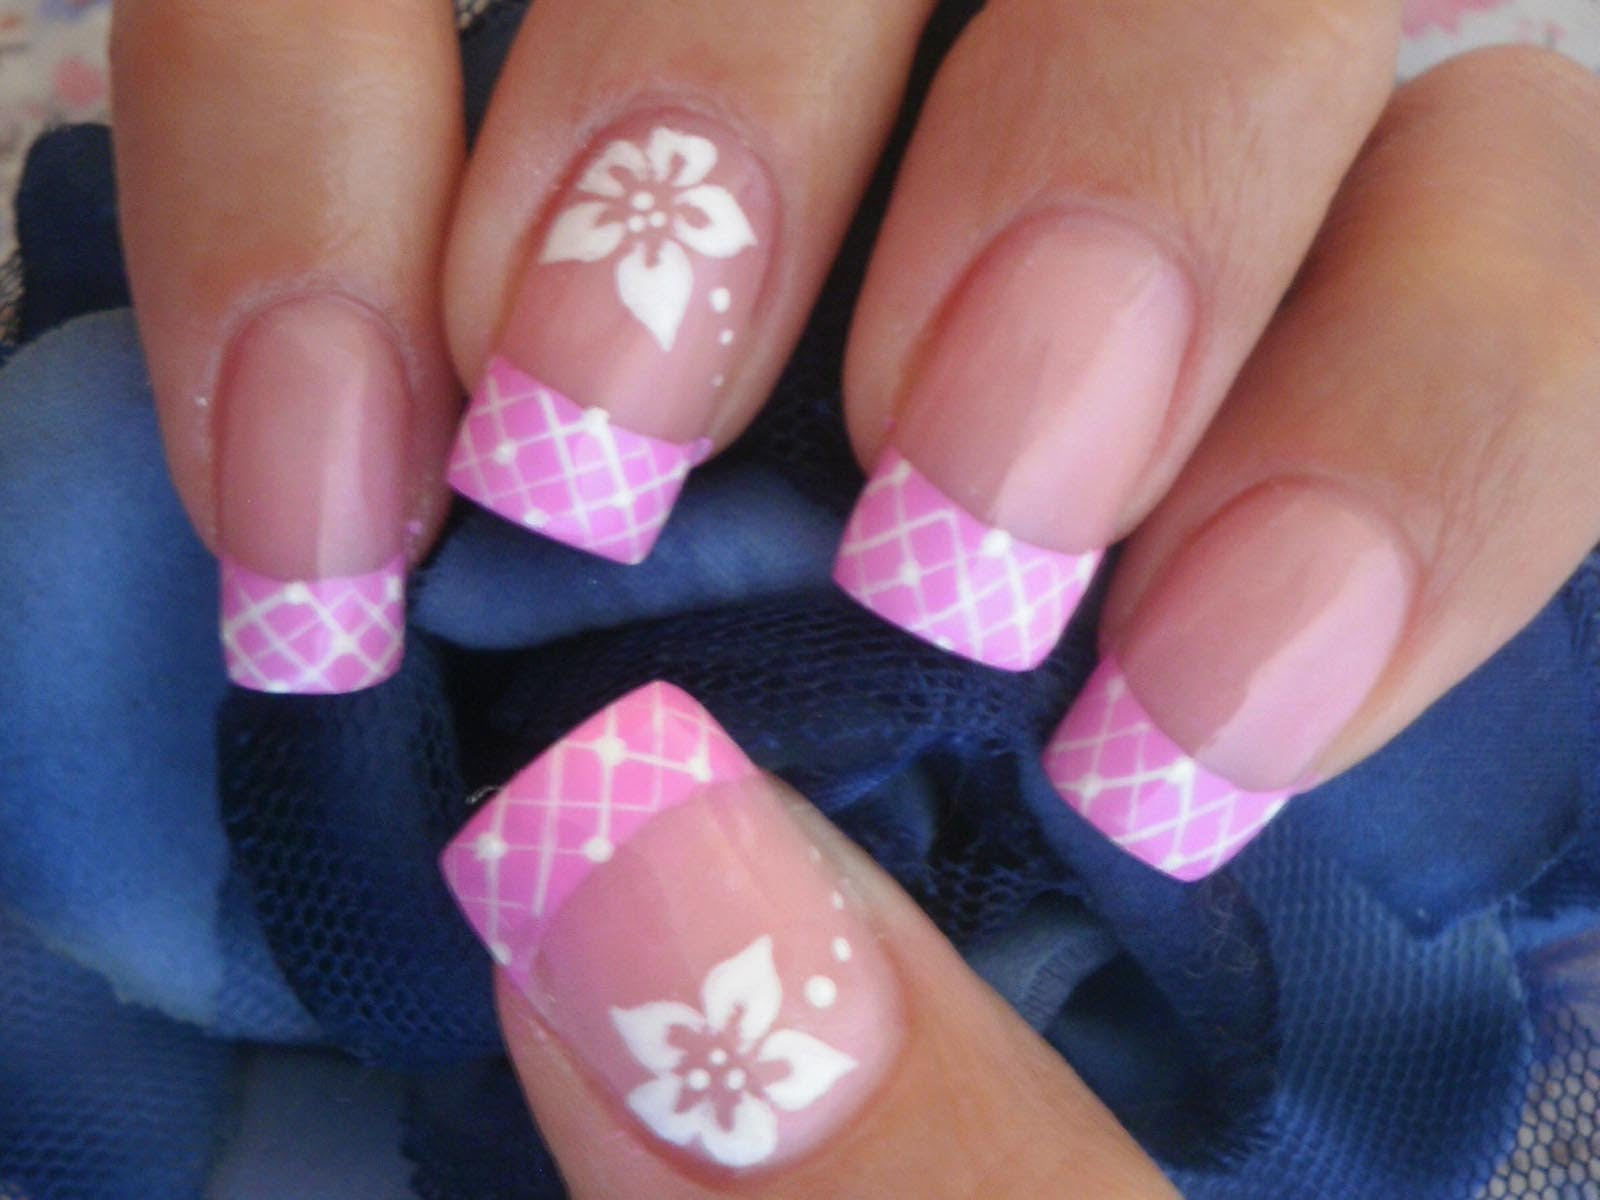 How To Paint Simple Cute Floral Sencilla Flower Nail Art Mani Step By Step Diy Tutorial